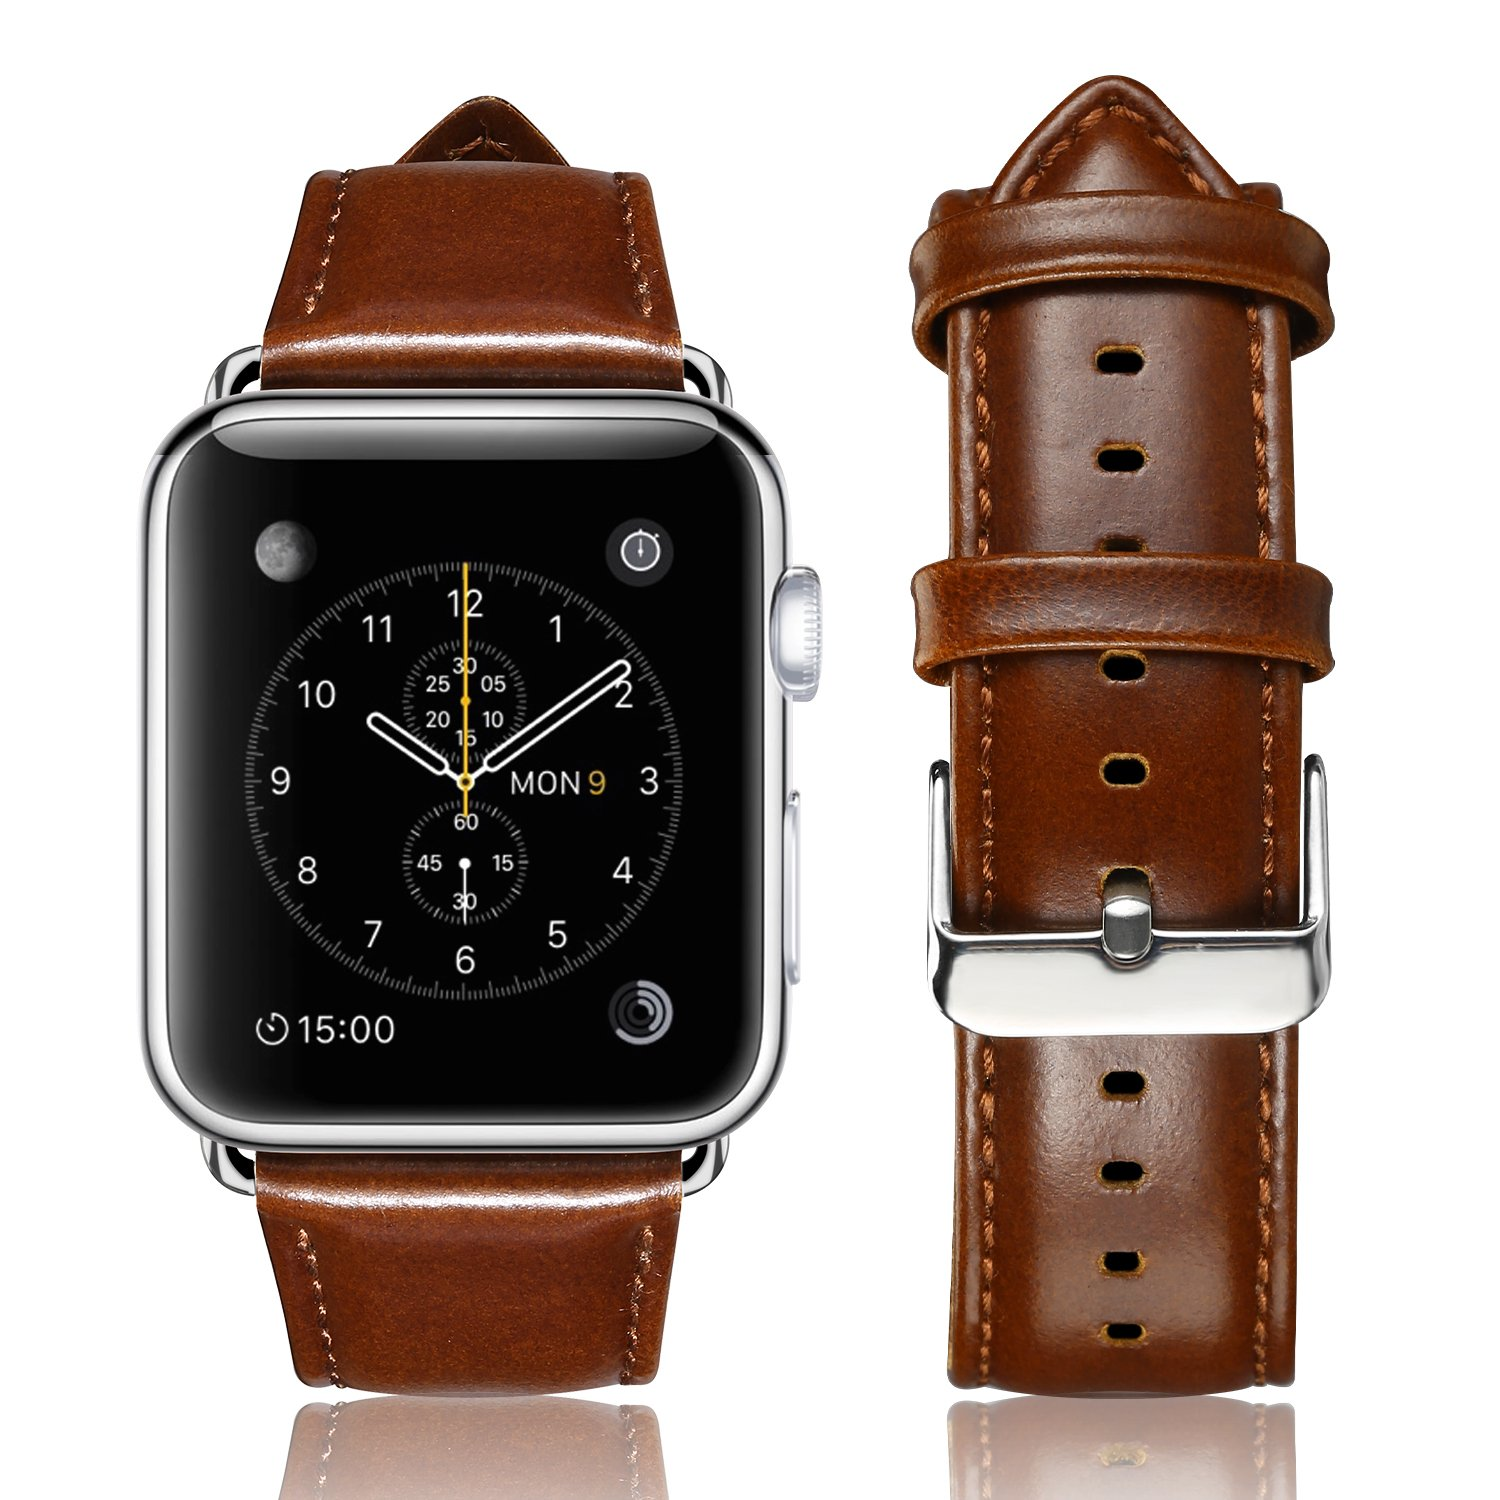 For Apple Watch Band, Yearscase 42MM Retro Vintage Genuine Leather iWatch Strap Replacement for Apple Watch Series 3 Series 2 Series 1 Nike+ Hermes&Edition - Brown